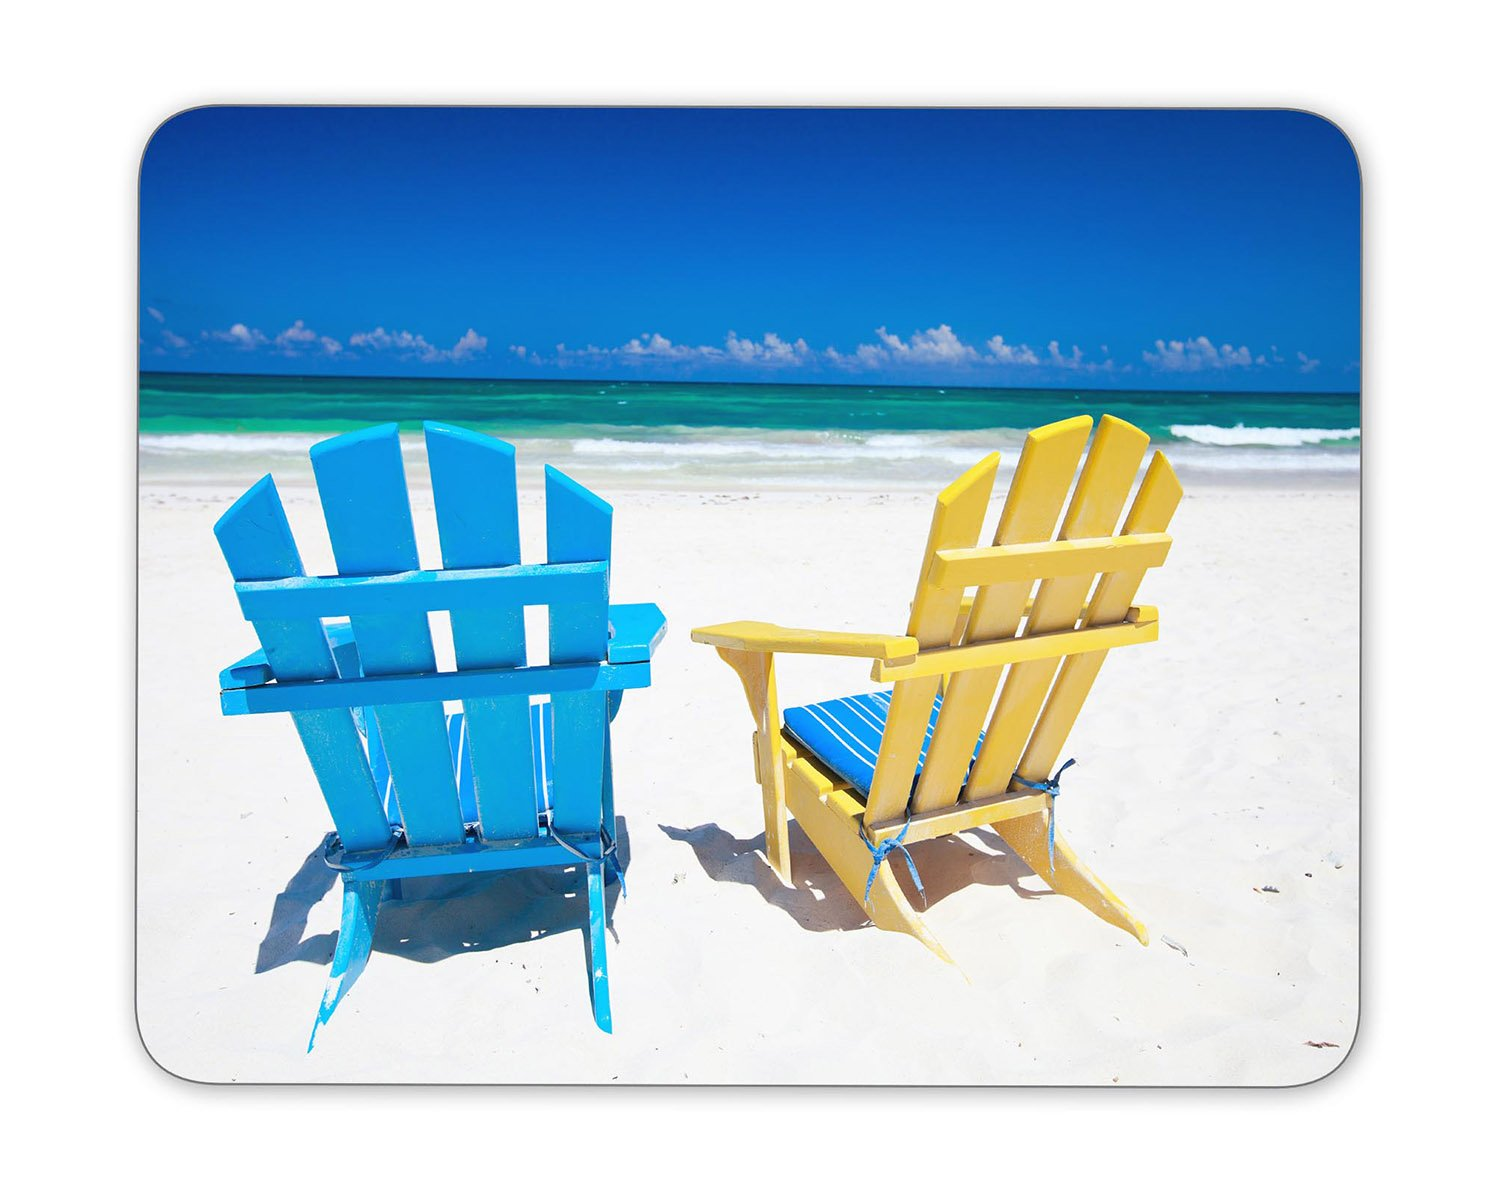 """Colorful wooden chairs on beach Mouse Pad mouse mouse pad Mouse Pad Pad Office Mouse Pad Gaming Mouse Pad Mat Mouse Pad mousepad Dimension: 9.5"""" x 7.9"""""""